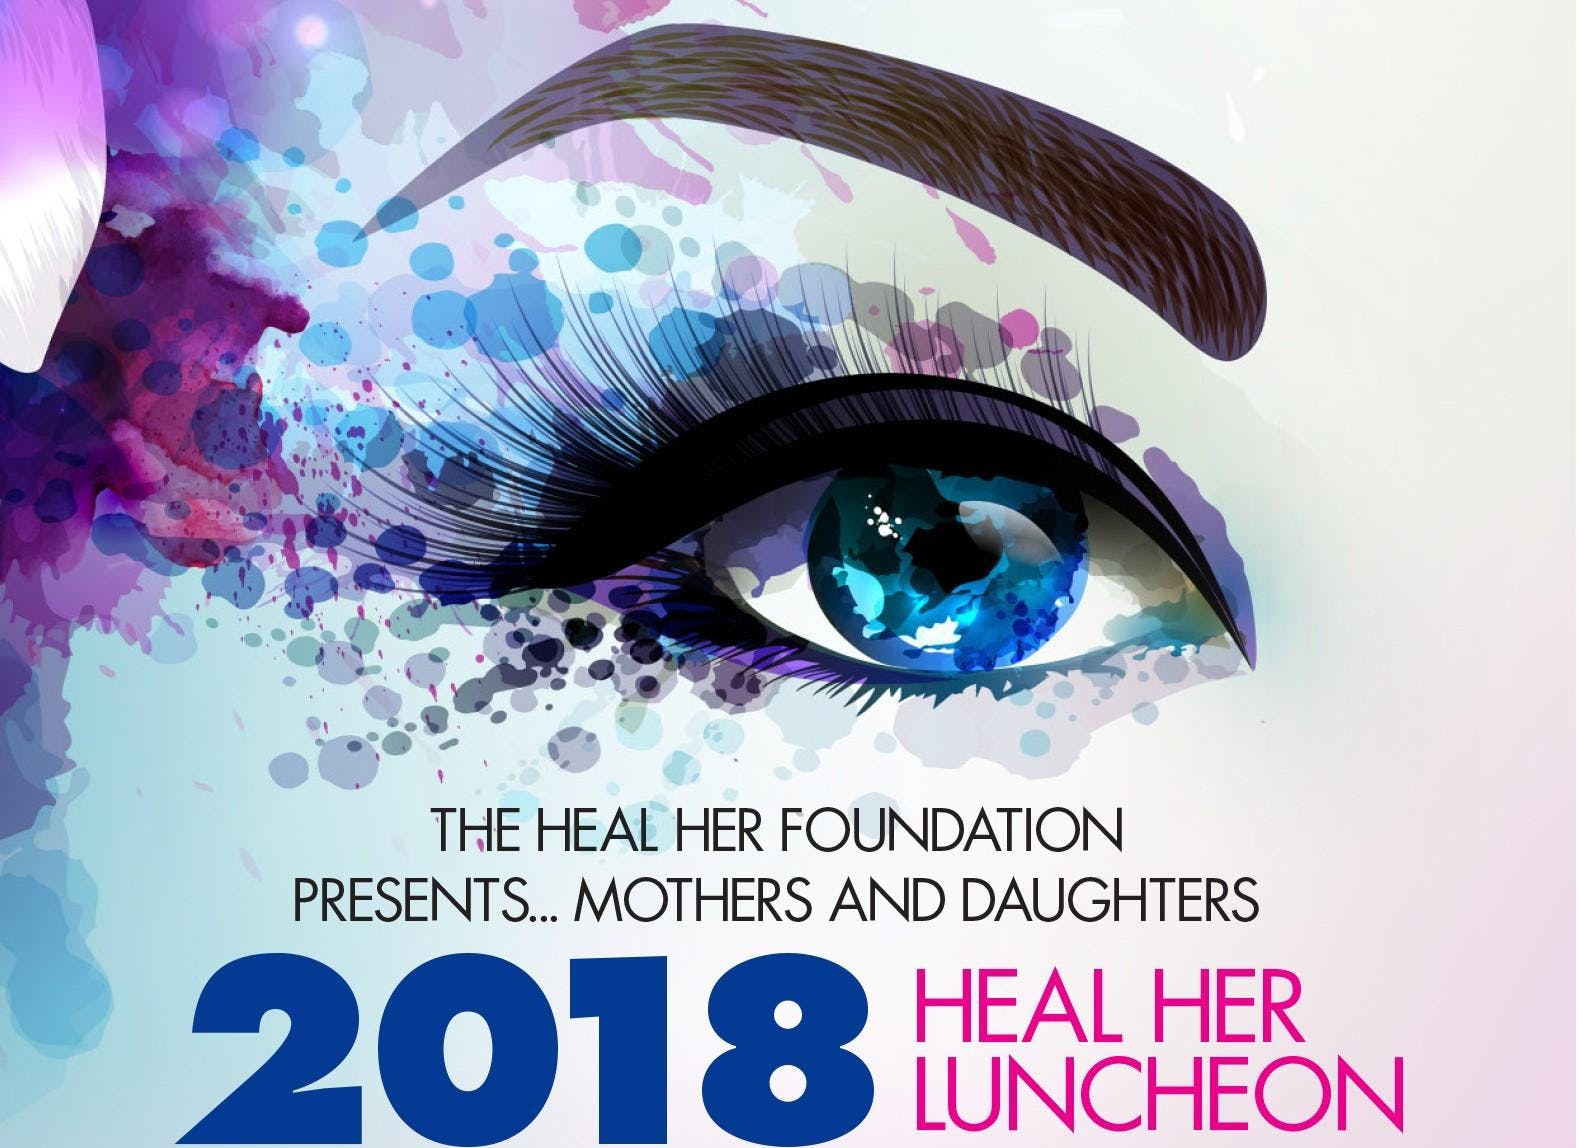 The Heal Her Foundation presents: Mothers and